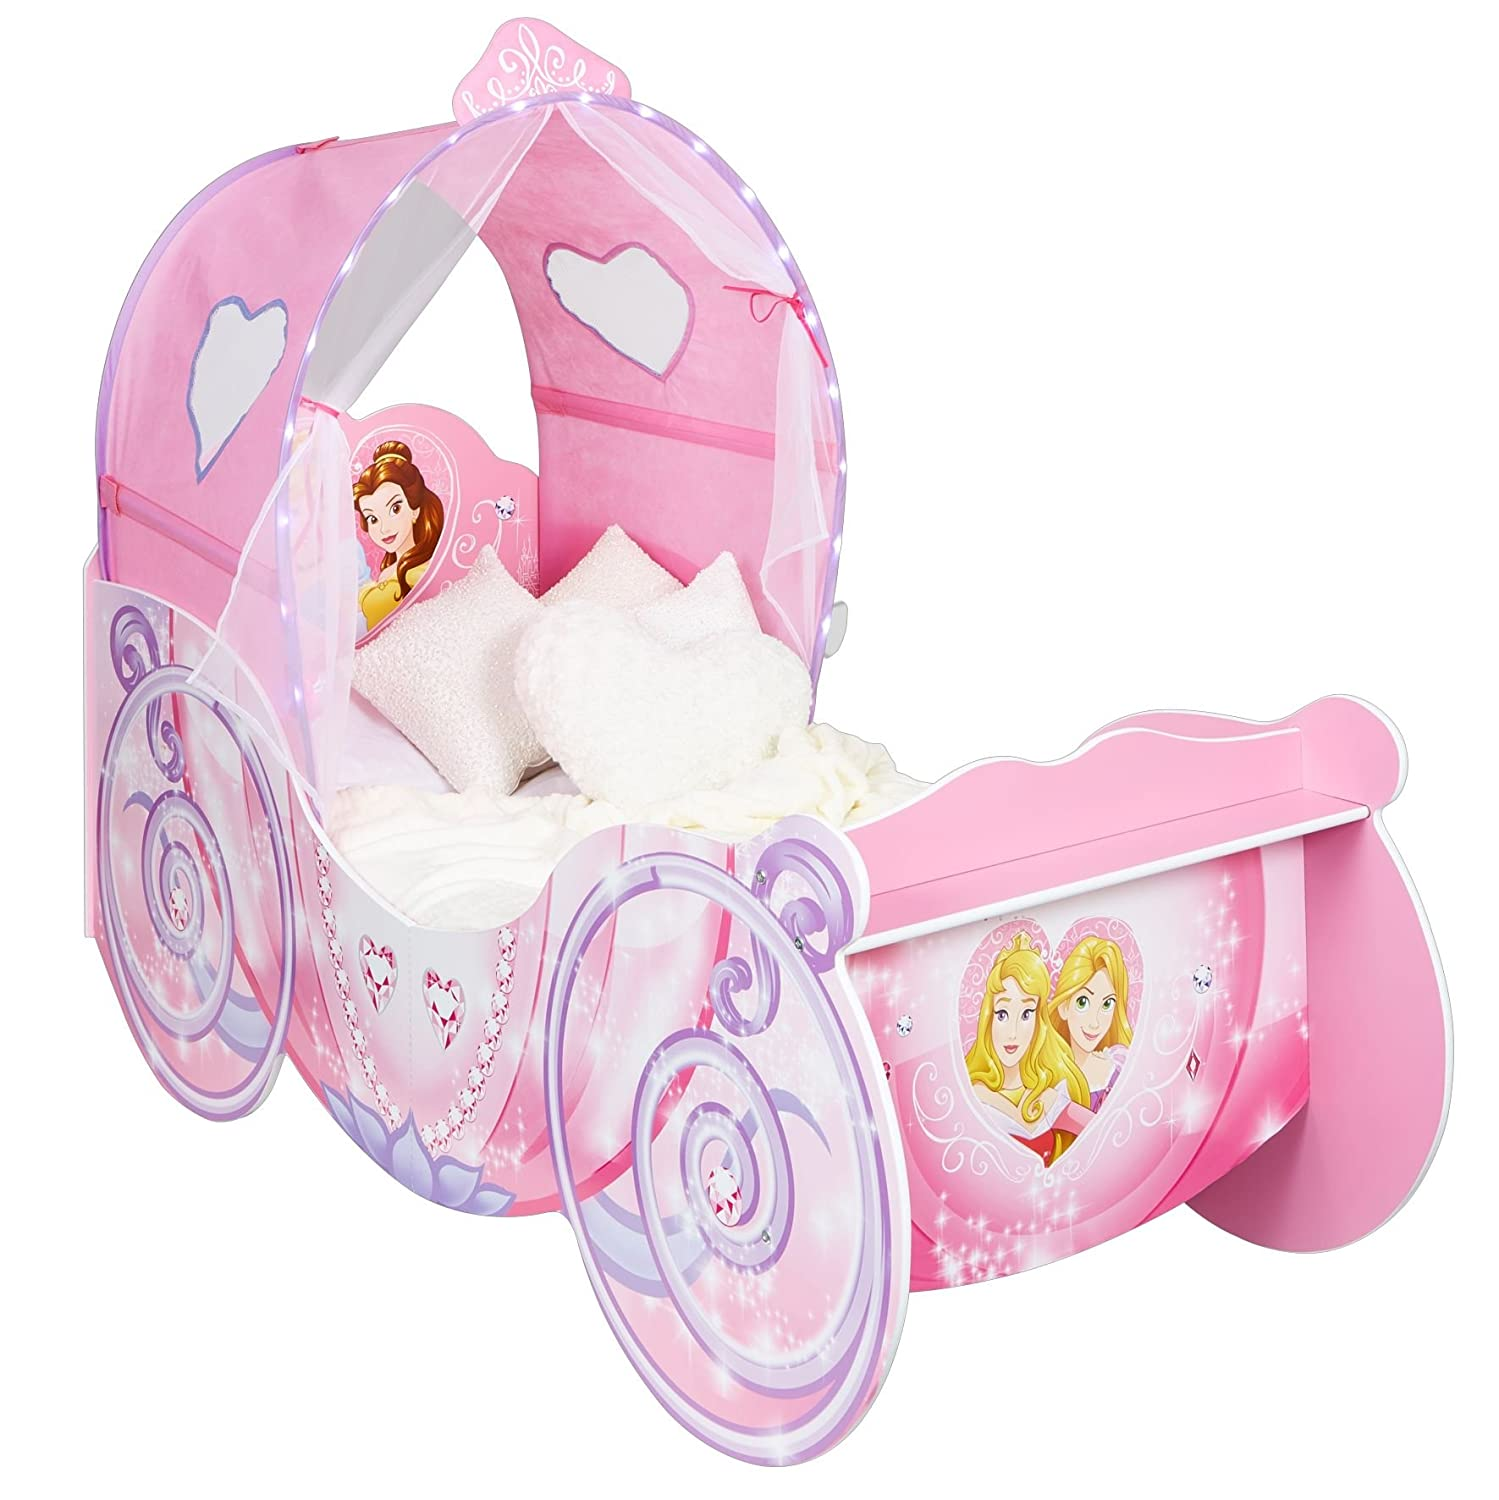 full in itm sheets bedding kids size mainstays bag princess a pretty comforter set twin bed